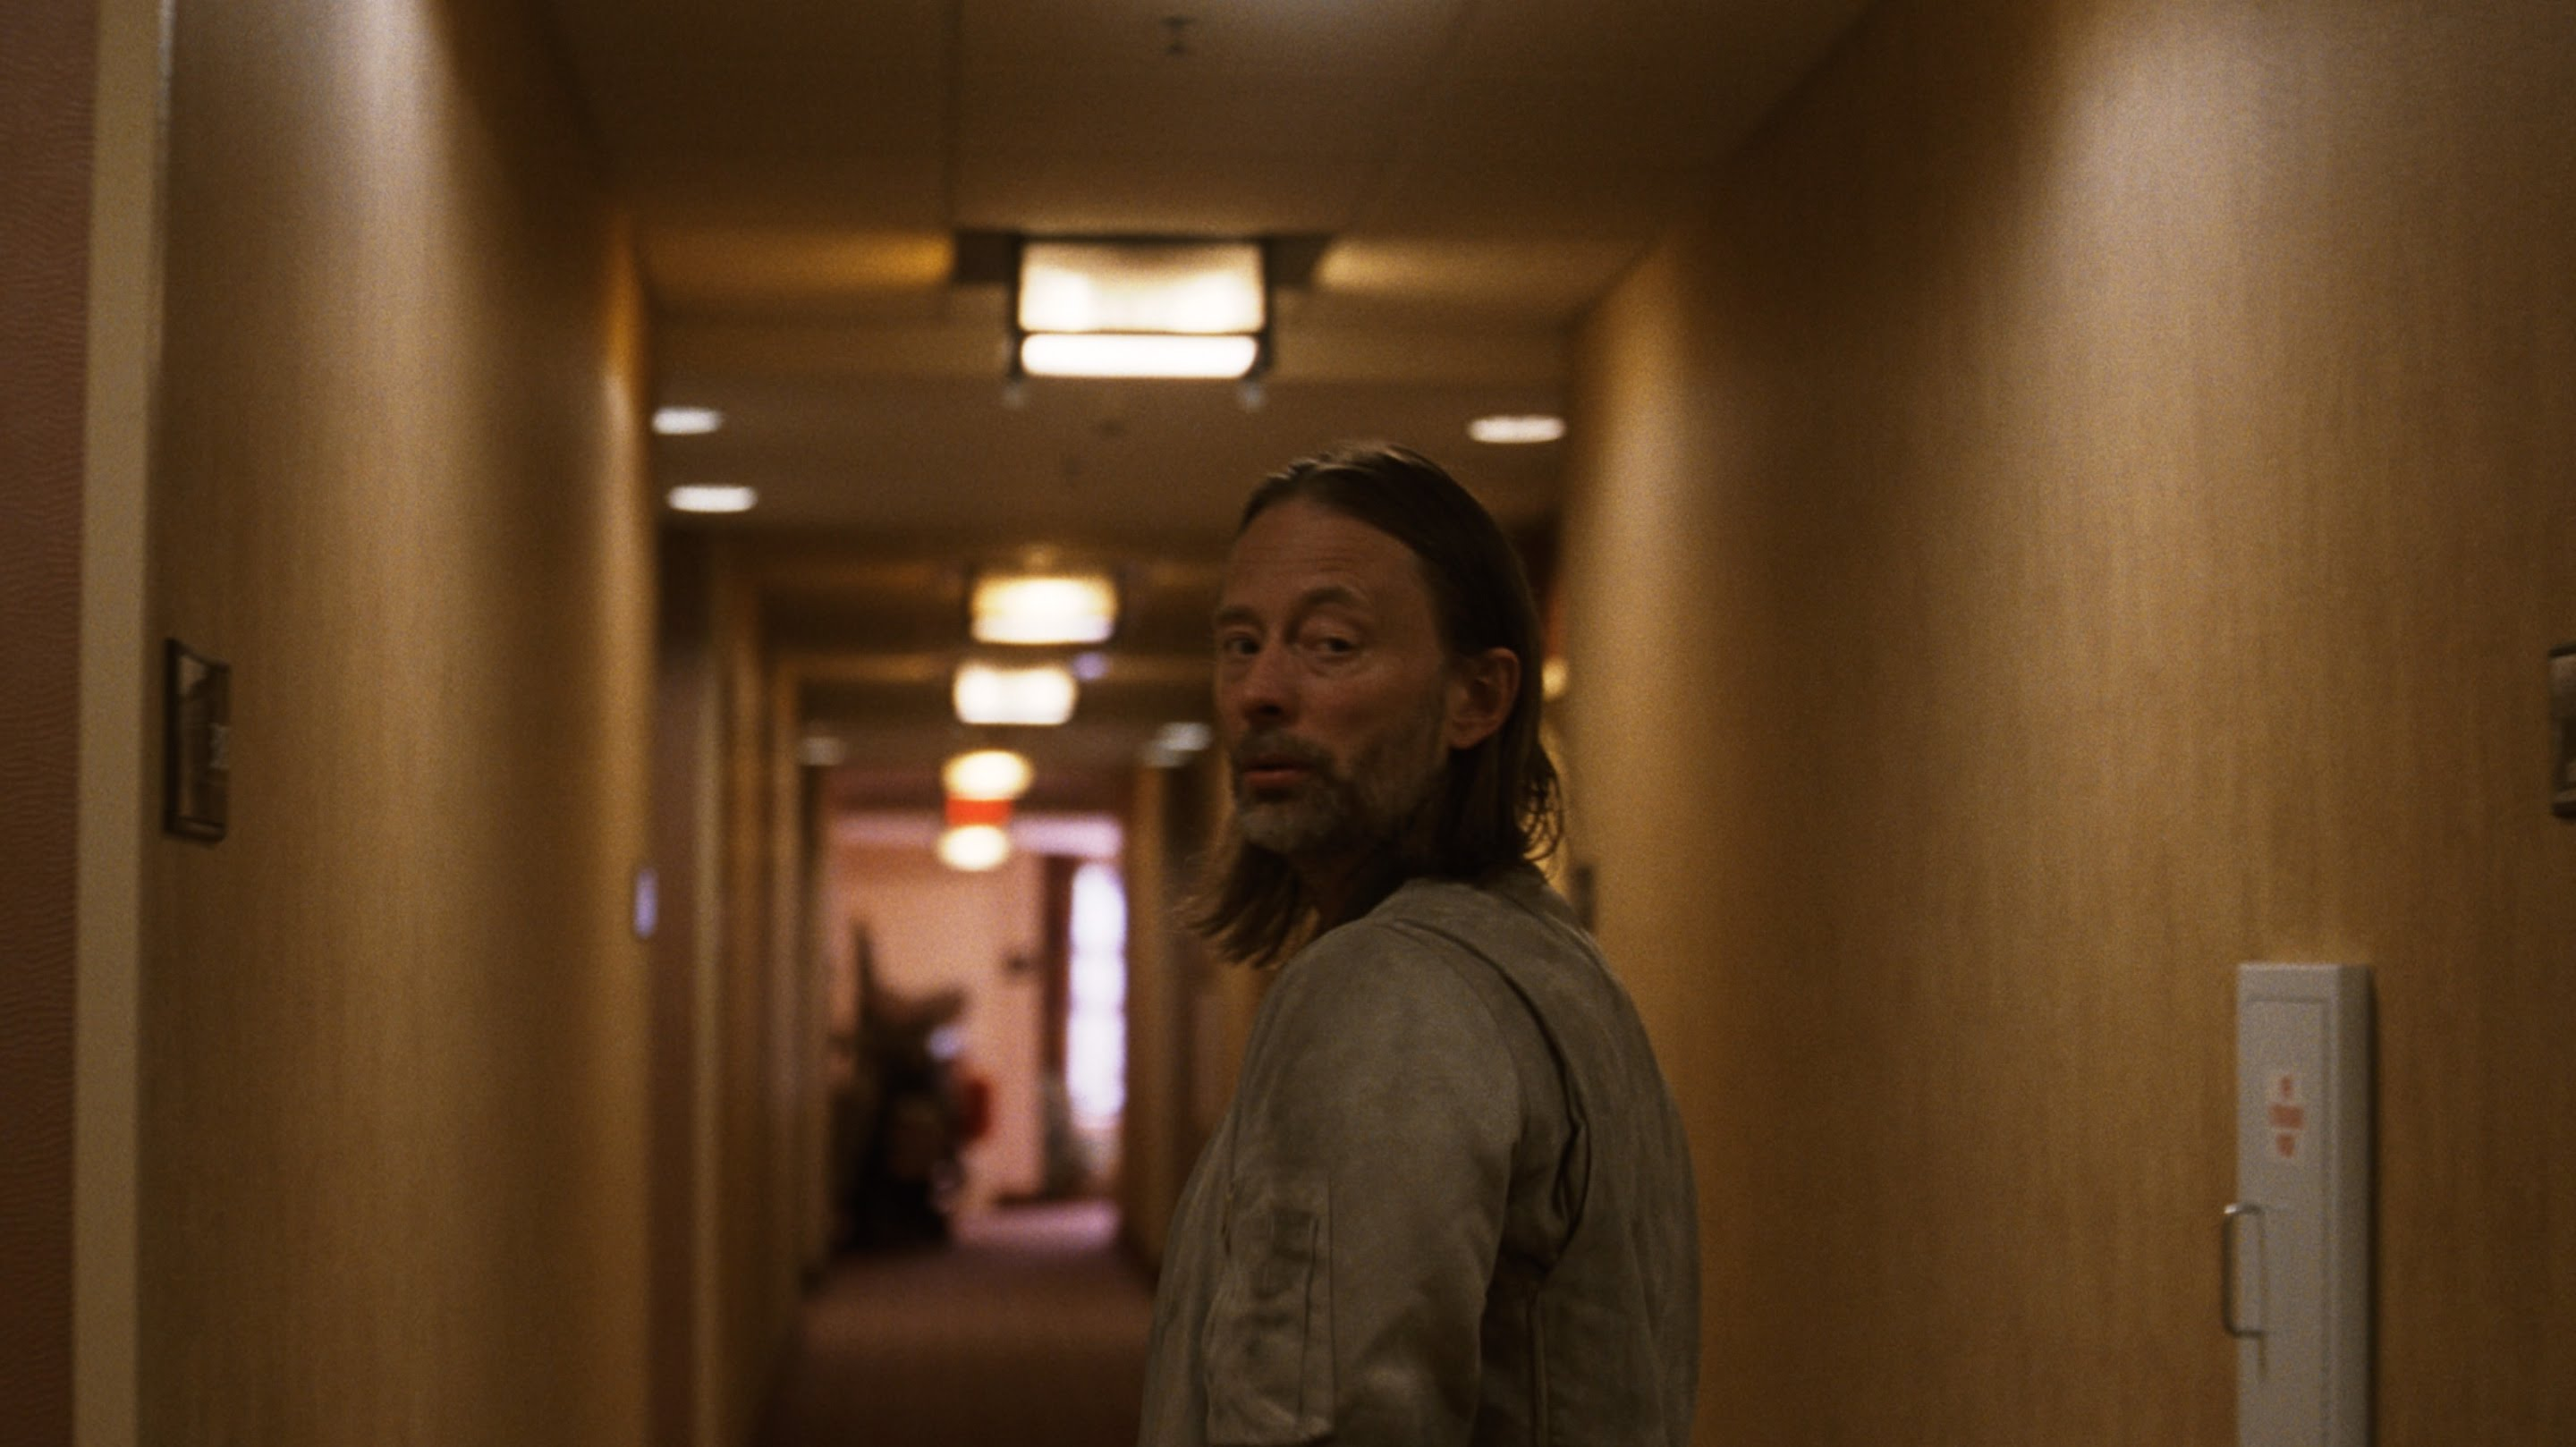 Radiohead's Thom Yorke set to score remake of cult classic horror film